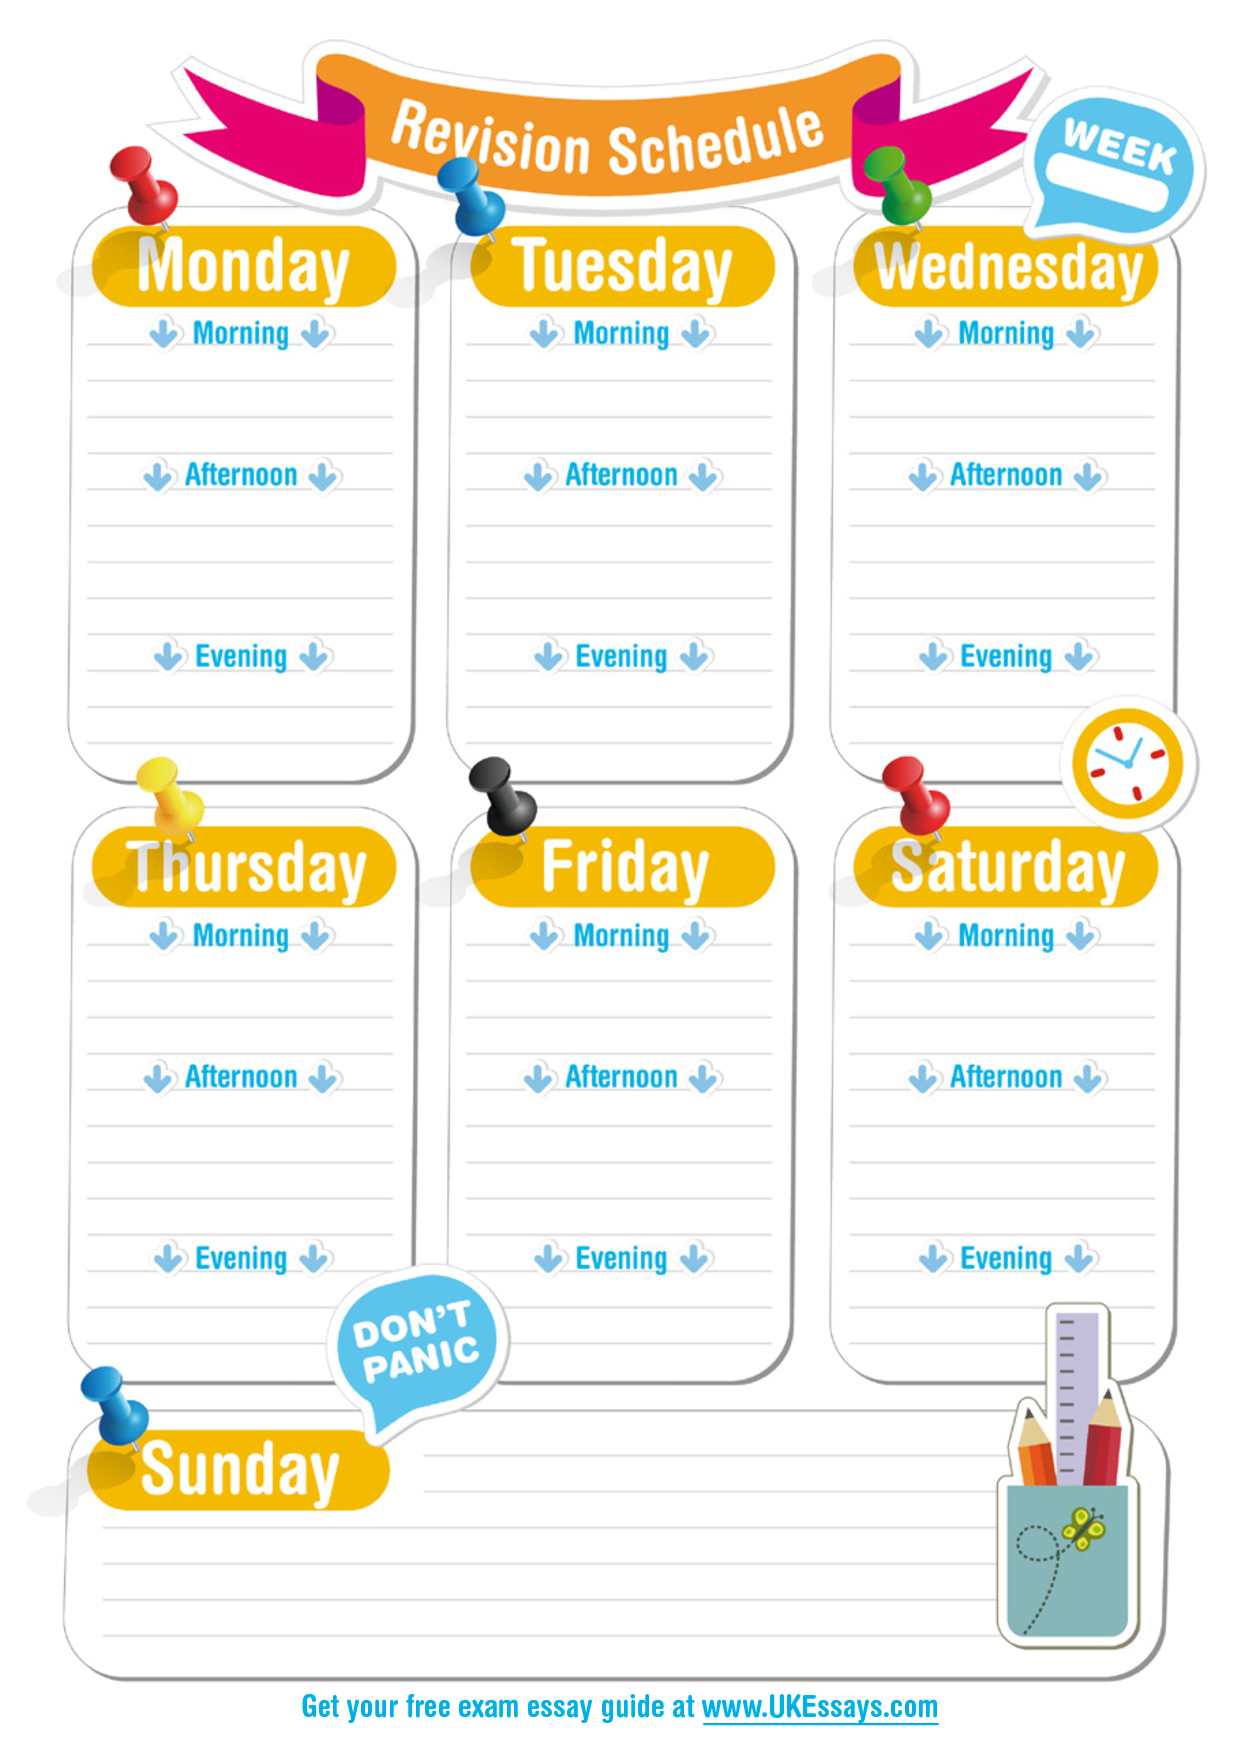 Blank Revision Timetable Template  Classroom    School